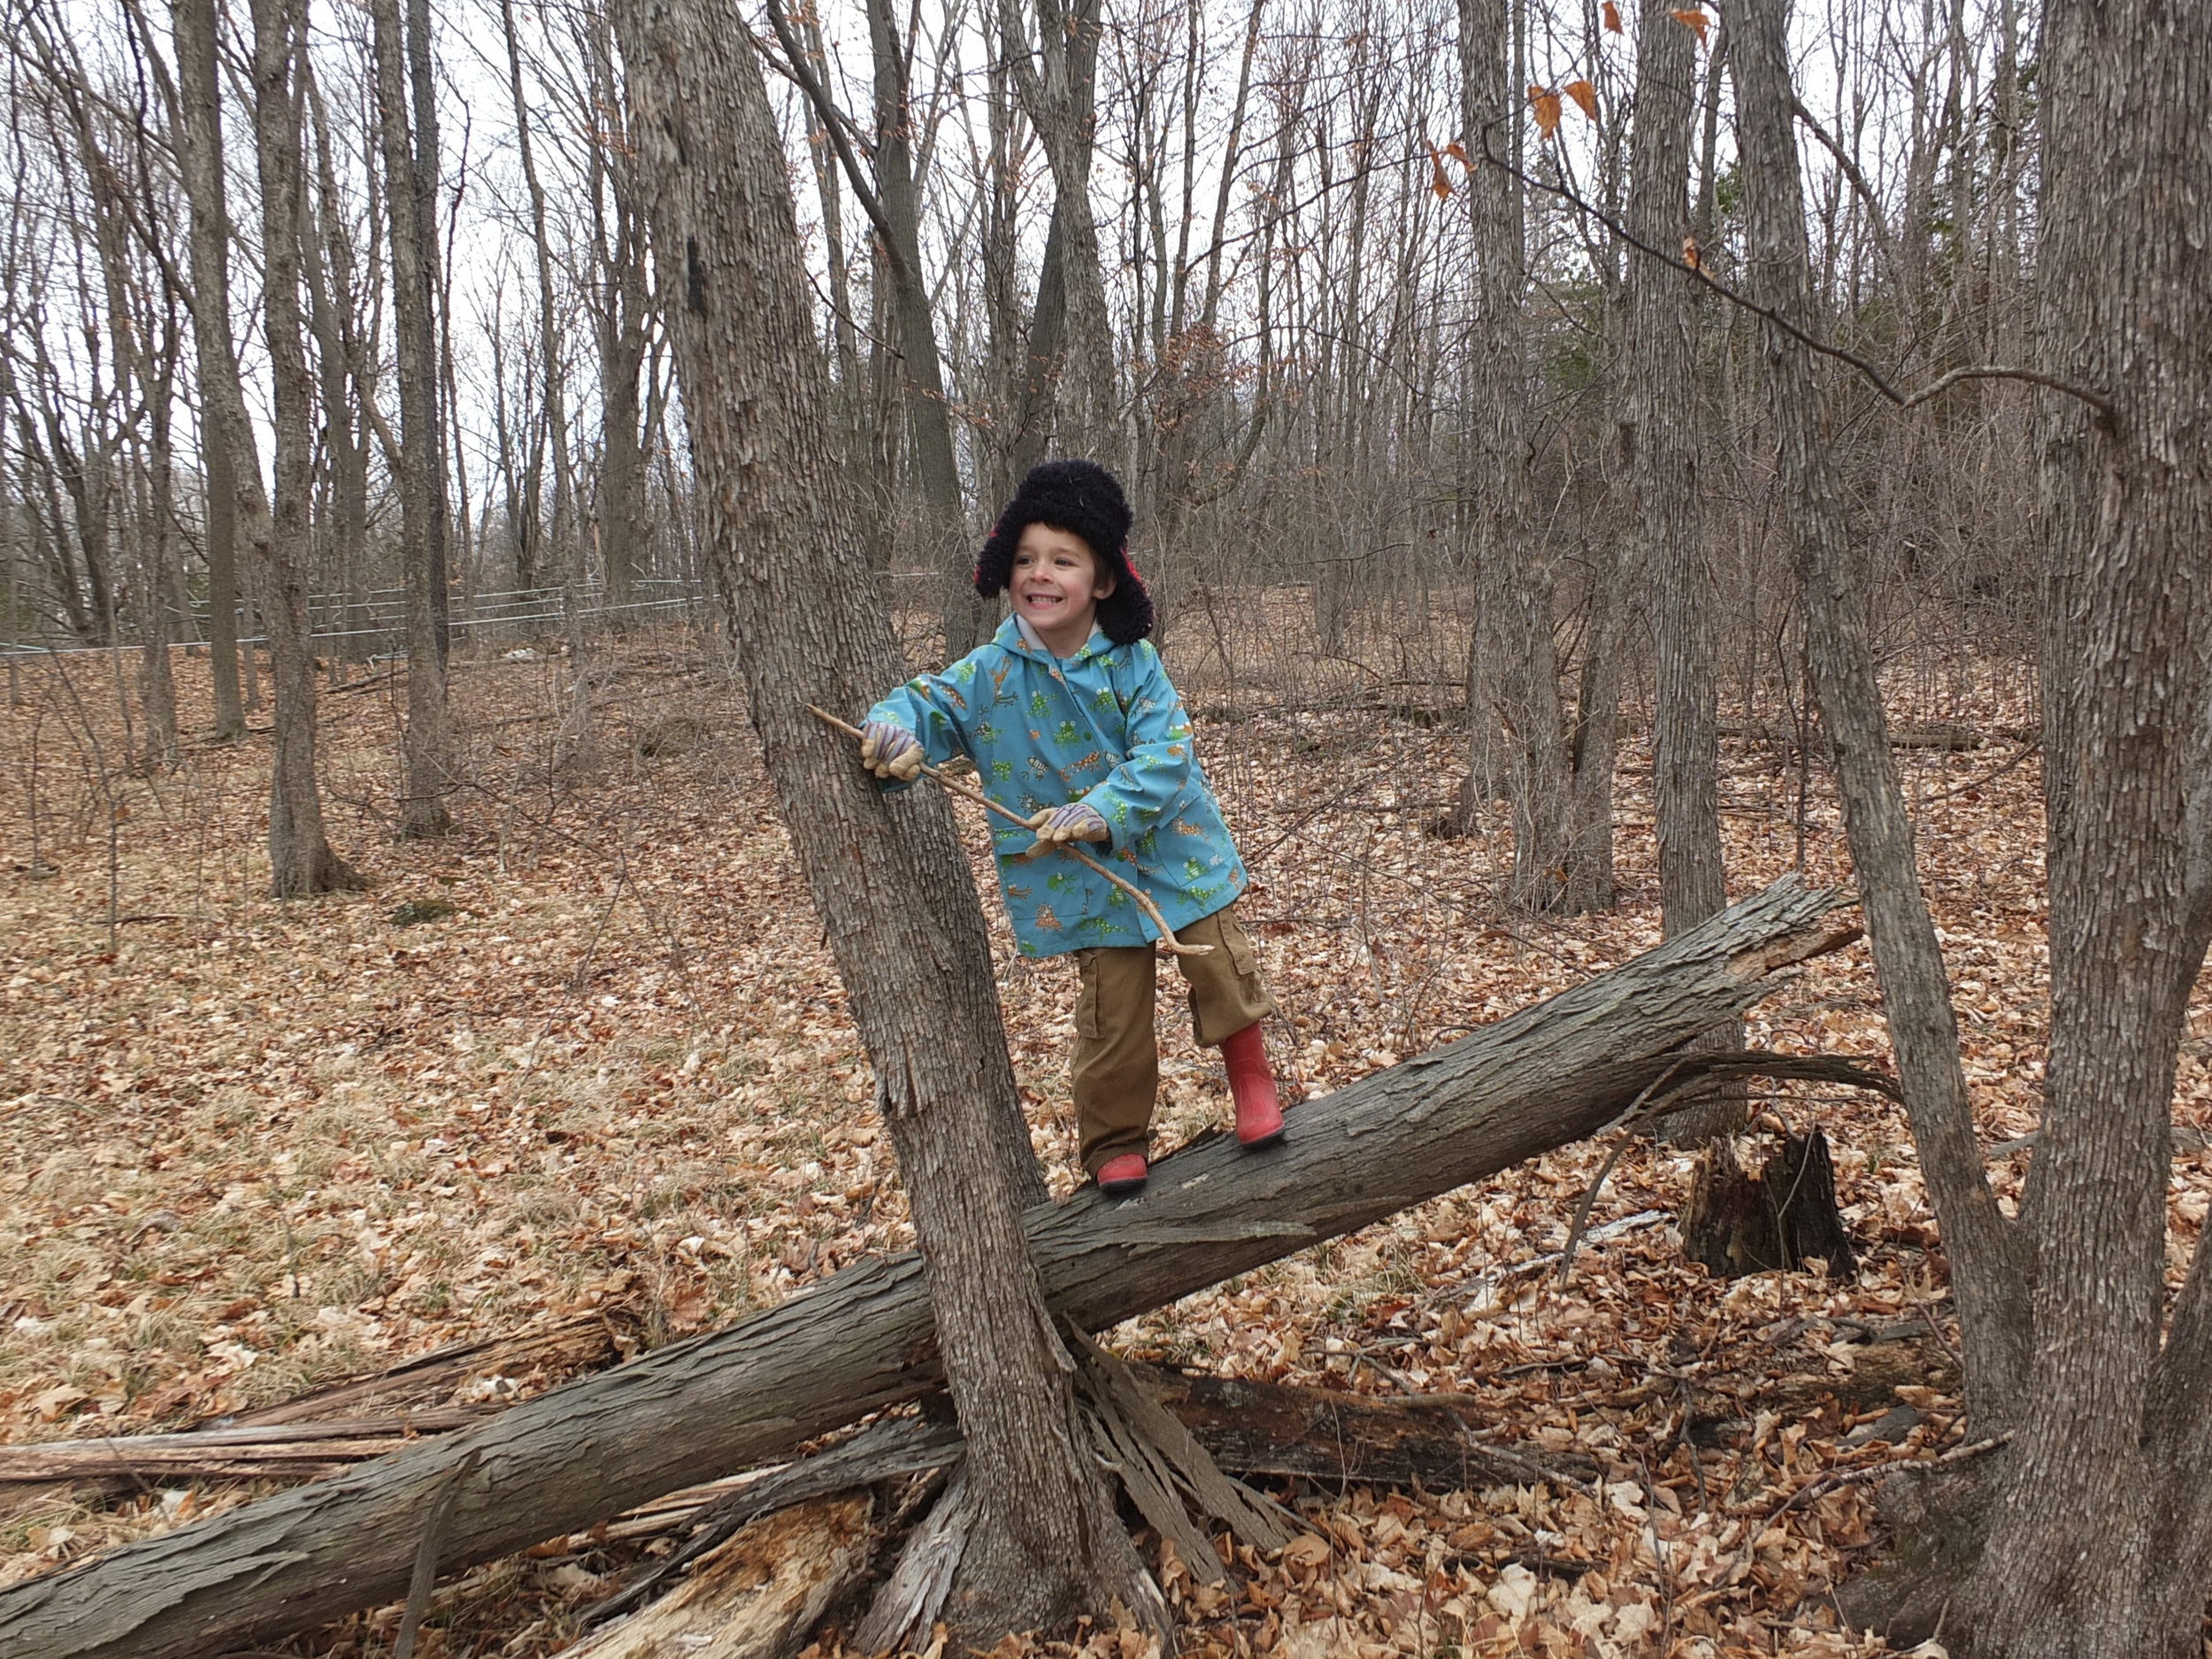 Exploring the woods on Fox Hill at Crescent Bay Farm